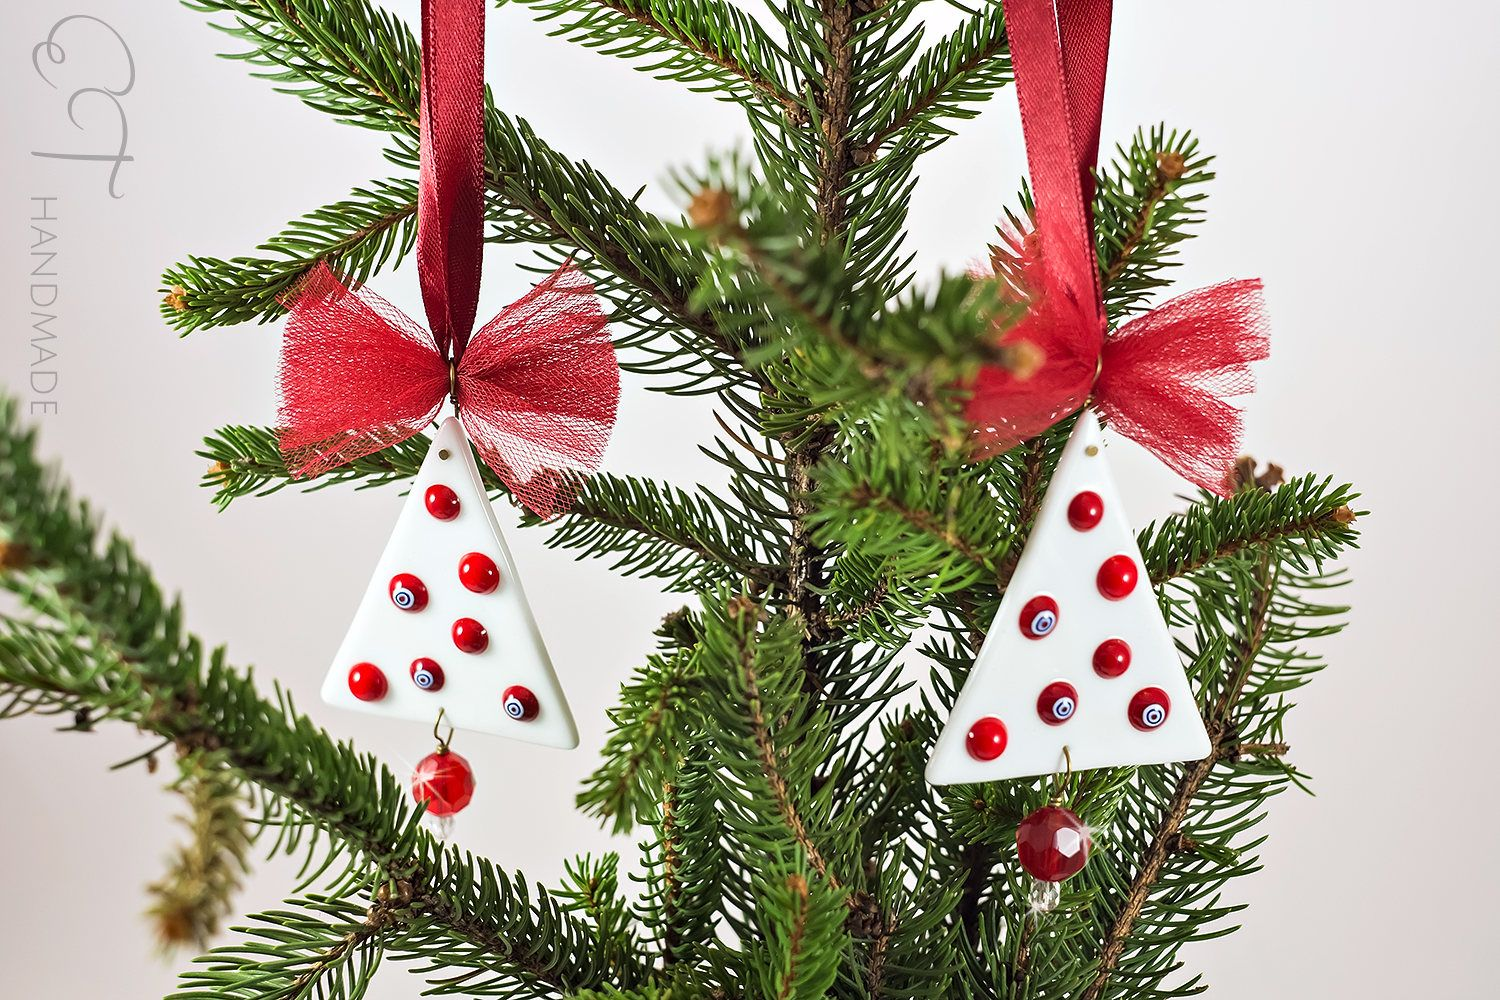 white and red tree ornaments set murano glass christmas ornaments tree decoration xmas ornament - Glass Christmas Tree Decorations